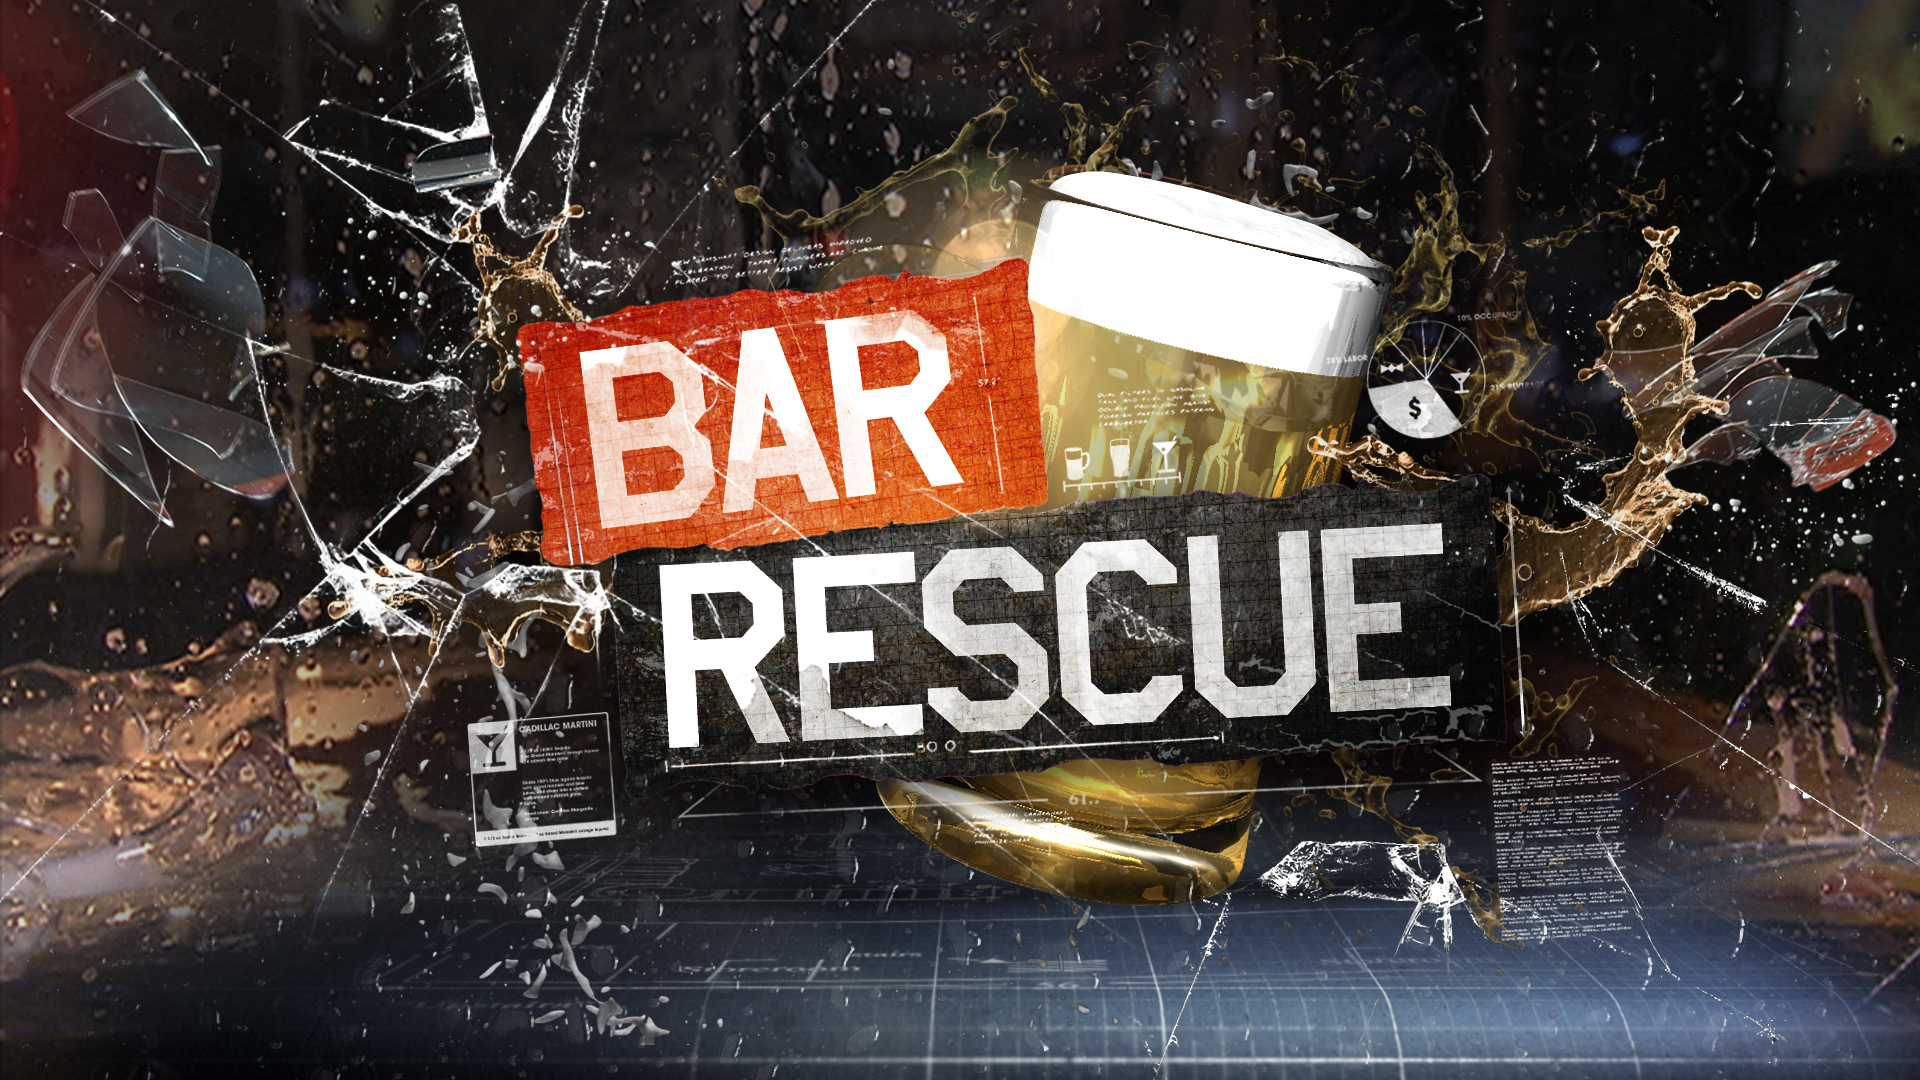 Bar Rescue with iSpy Music